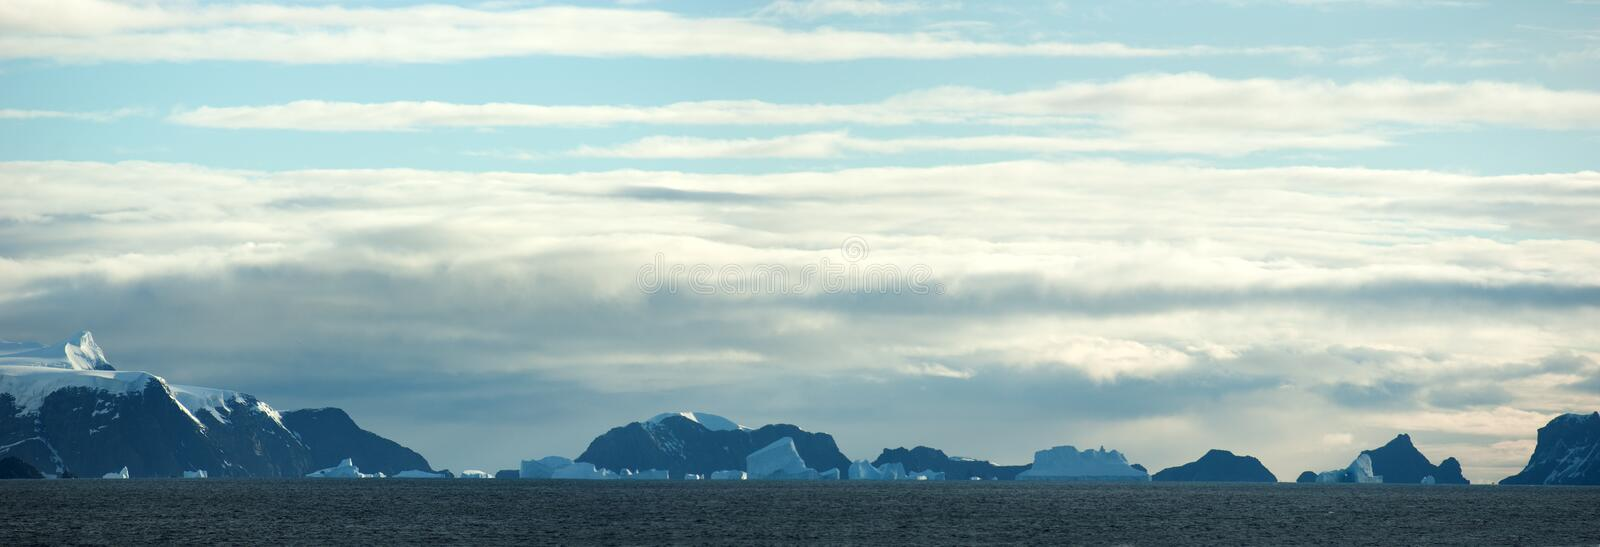 Southern Orkney Islands in antarctic area